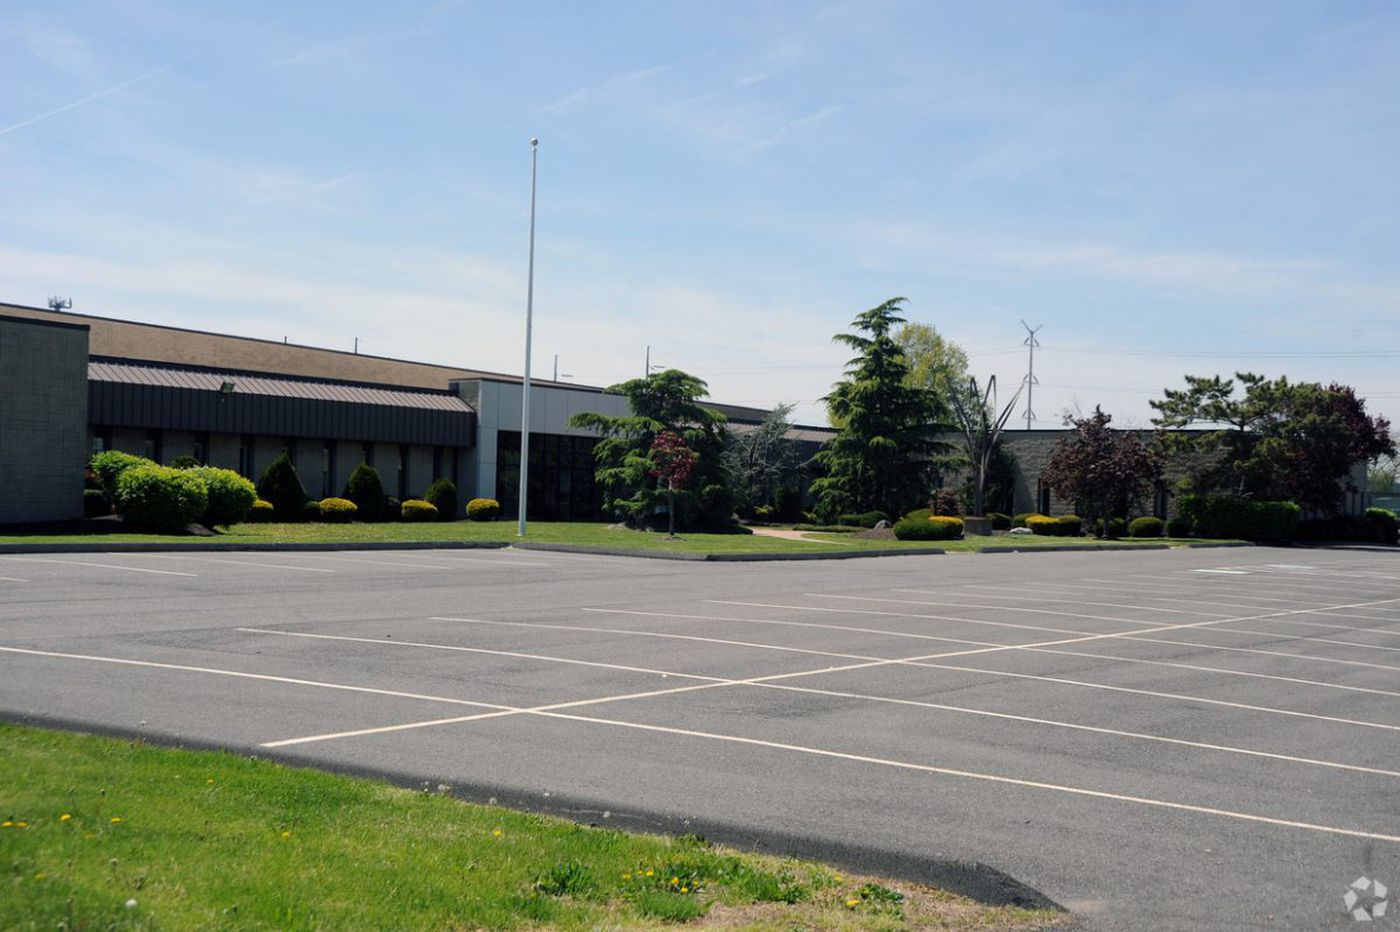 Penn Medicine buys industrial property in Southwest Philly near airport